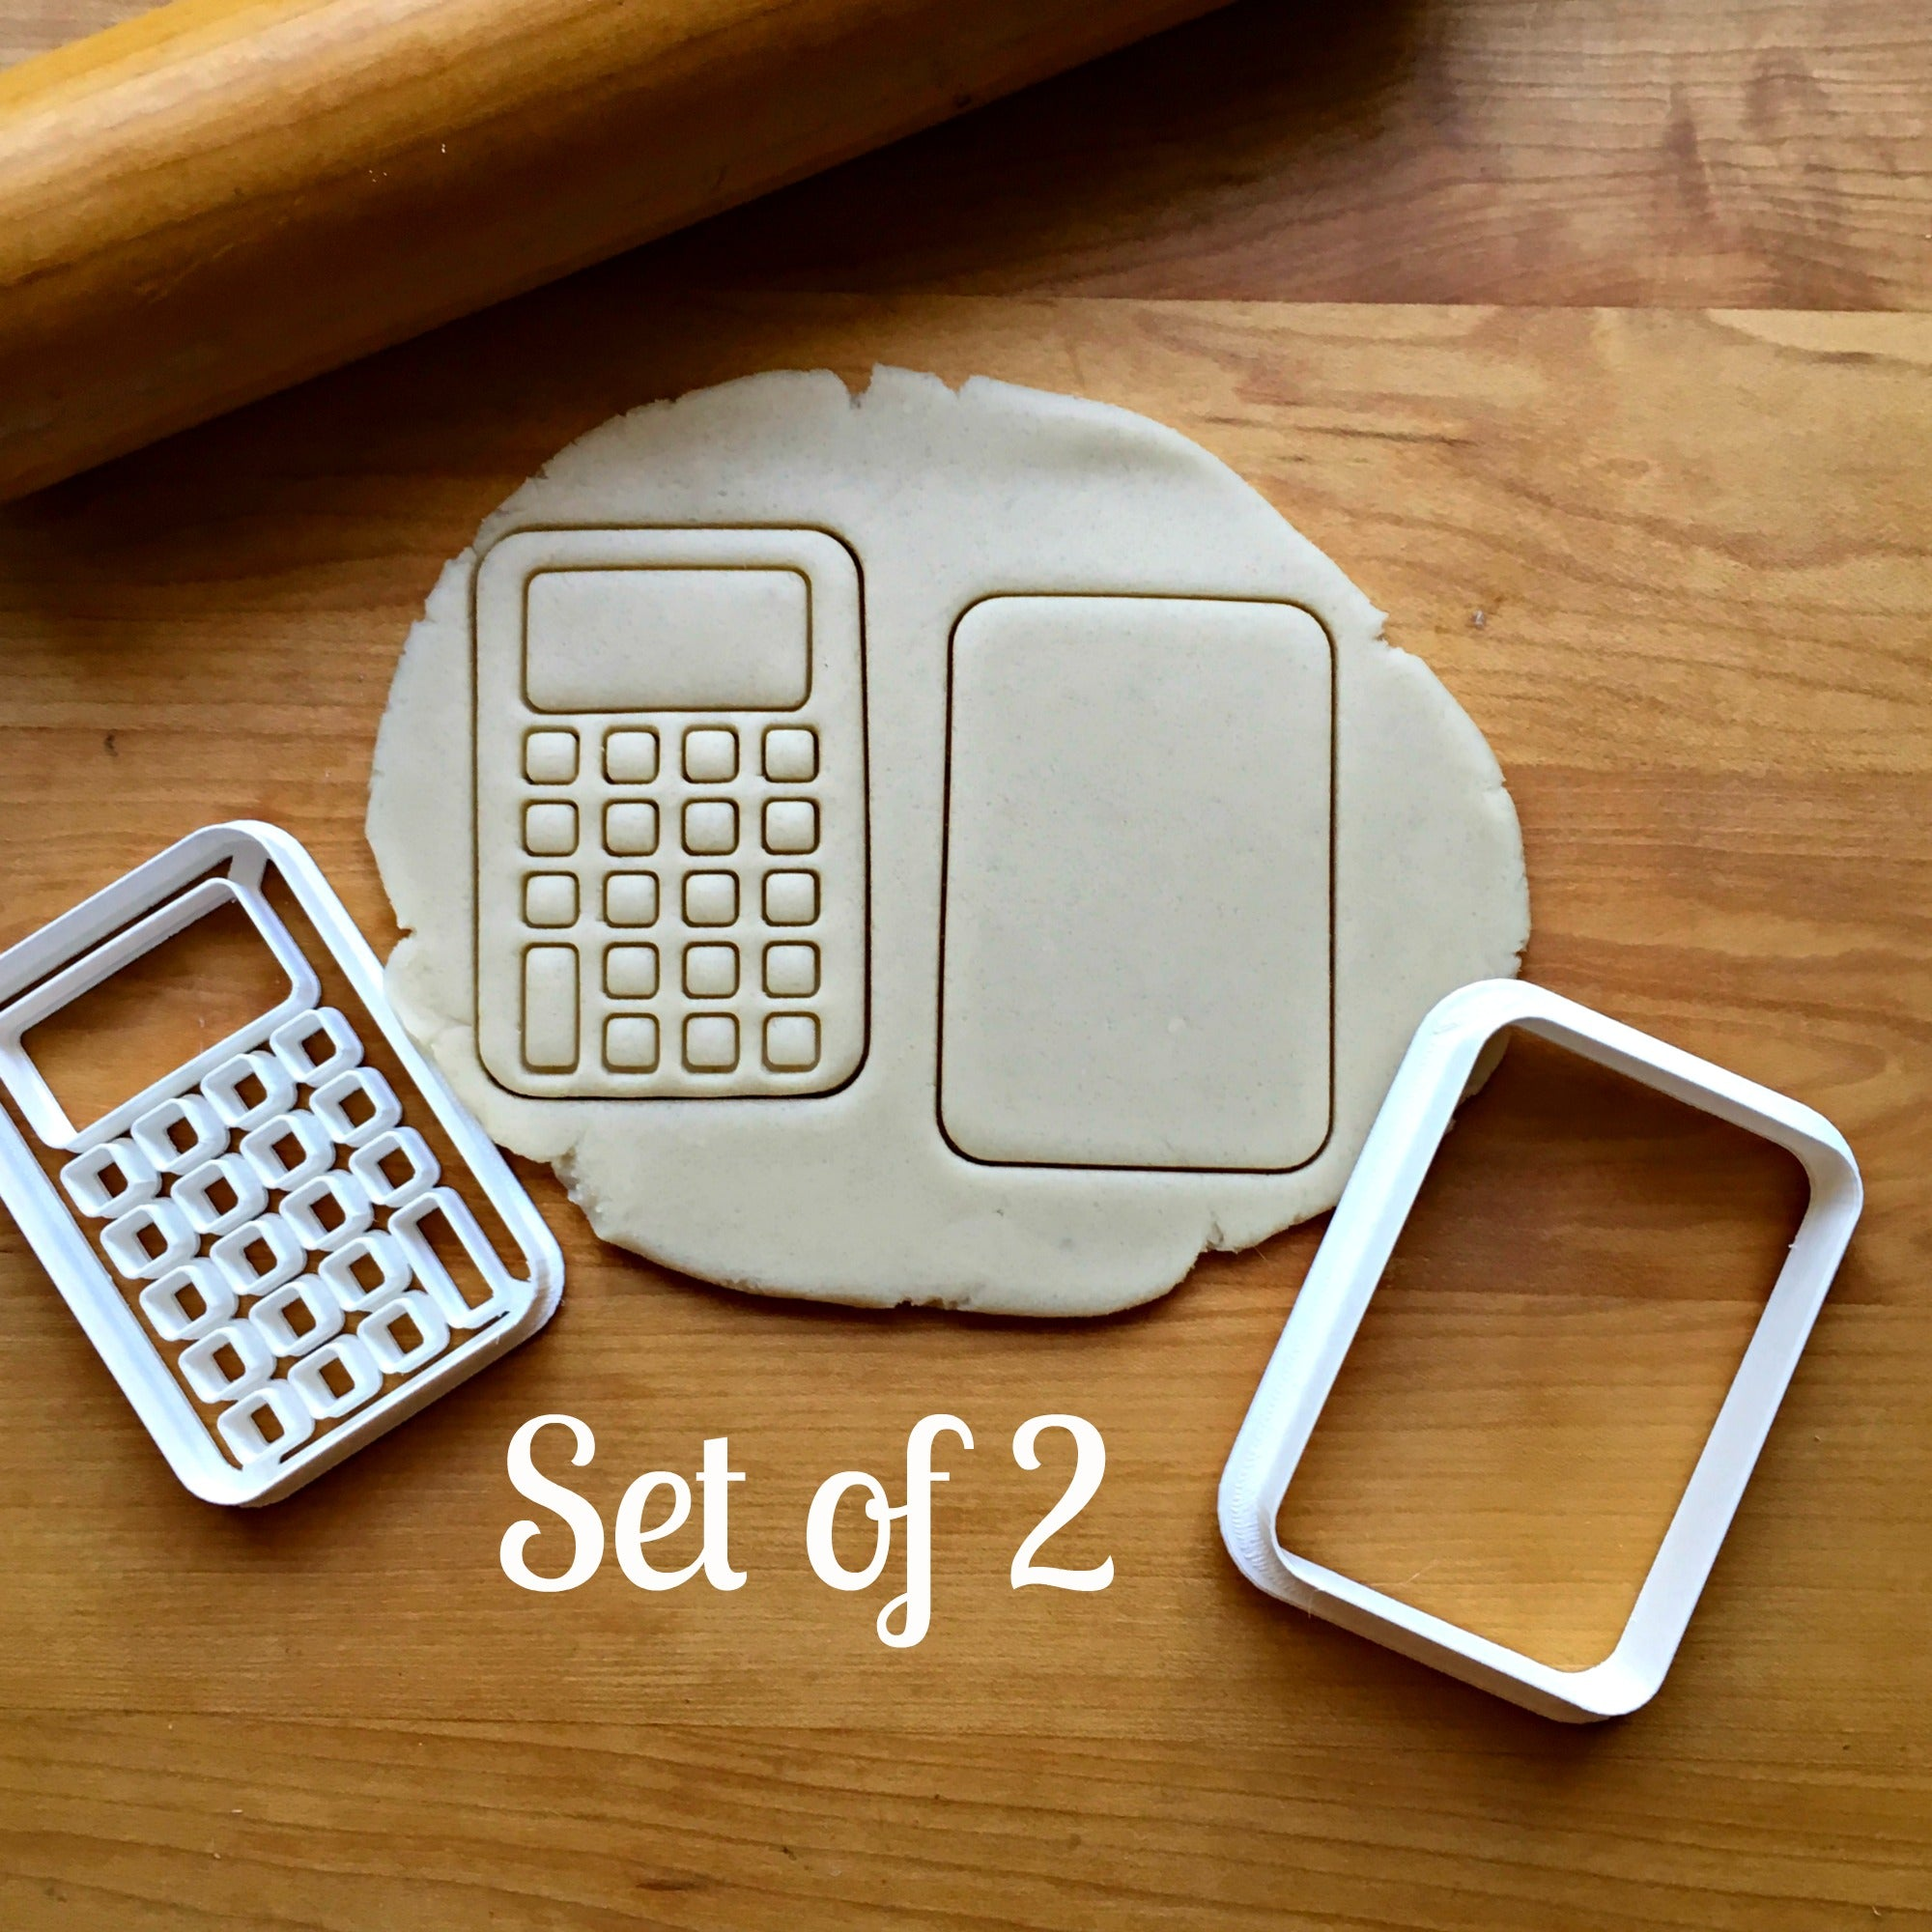 Set of 2 Calculator Cookie Cutters/Dishwasher Safe